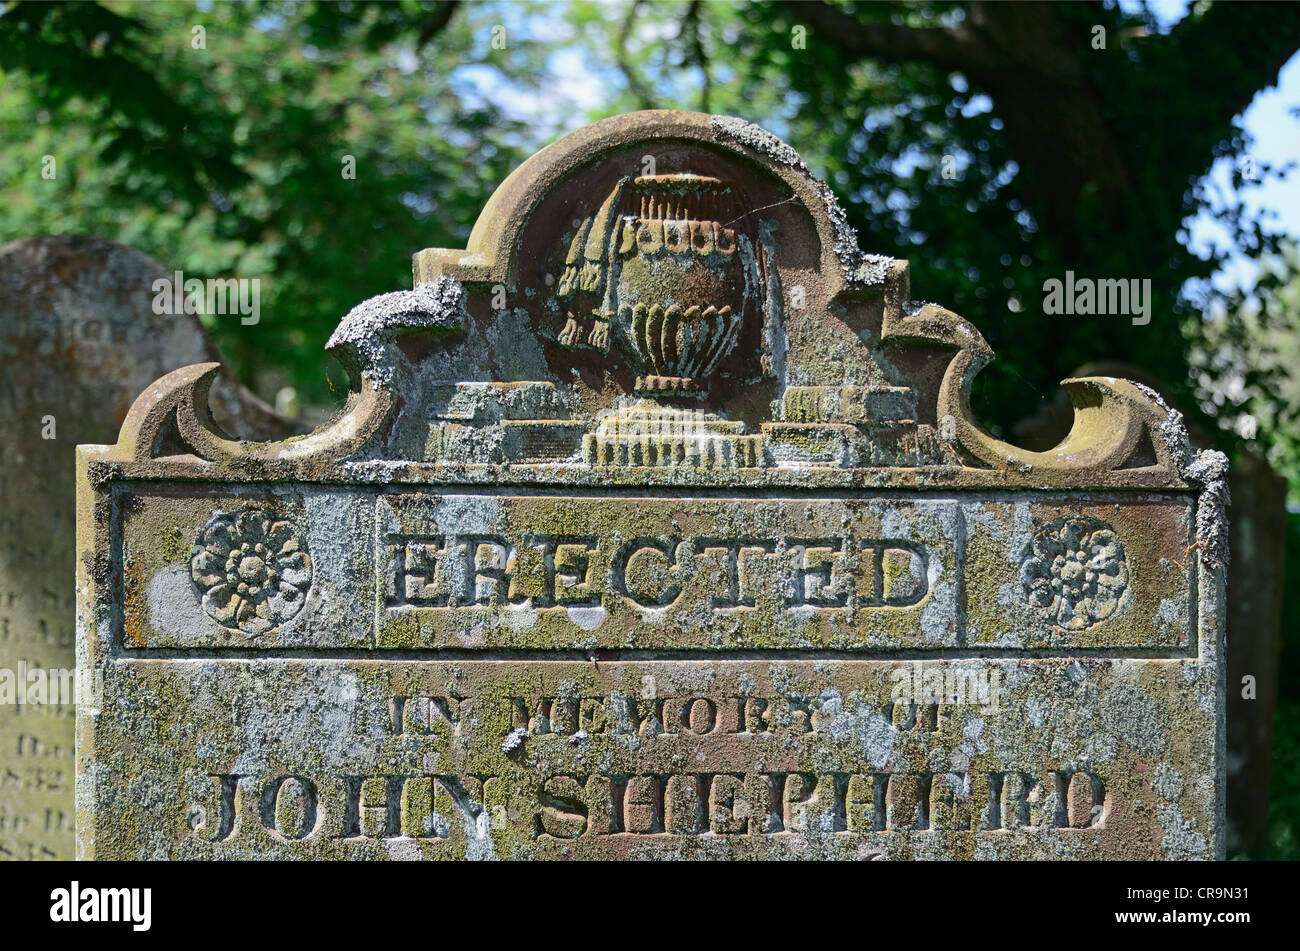 Gravestone with urn, books and lichen. Church of Saint Mary. Gosforth. Lake District National Park, Cumbria, England, - Stock Image